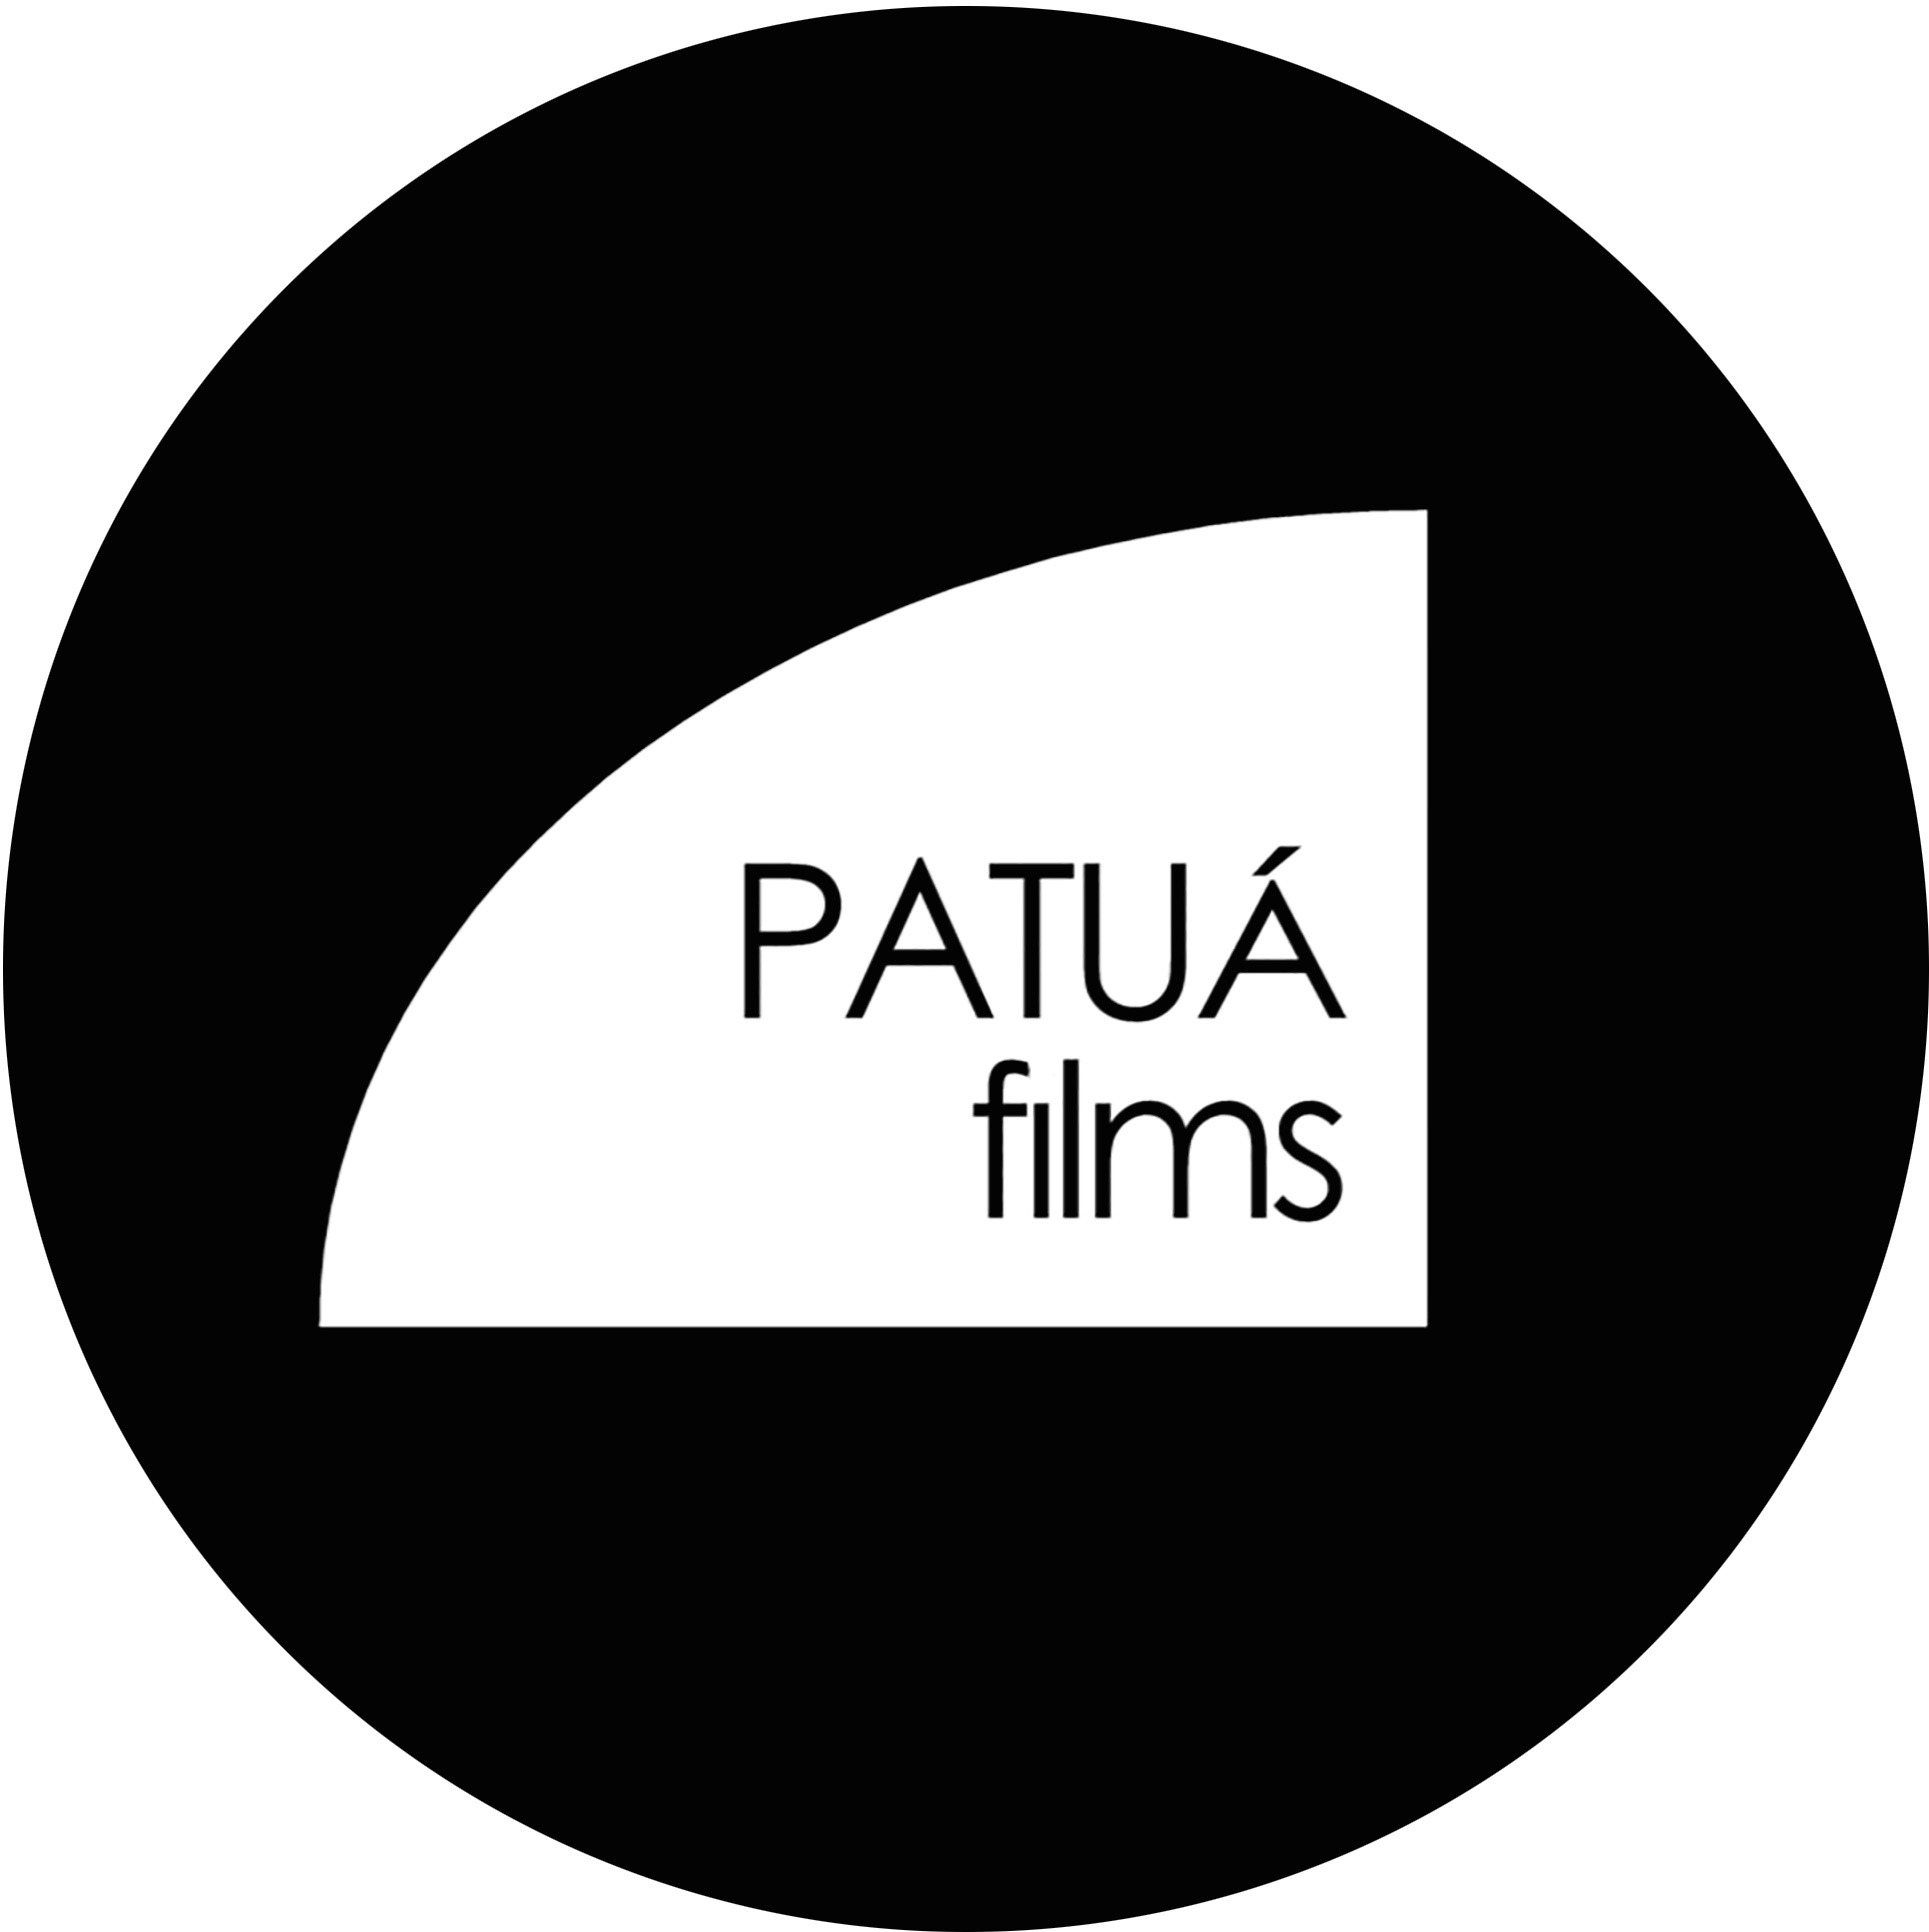 patuafilms_logo_square_102017_circle.jpg